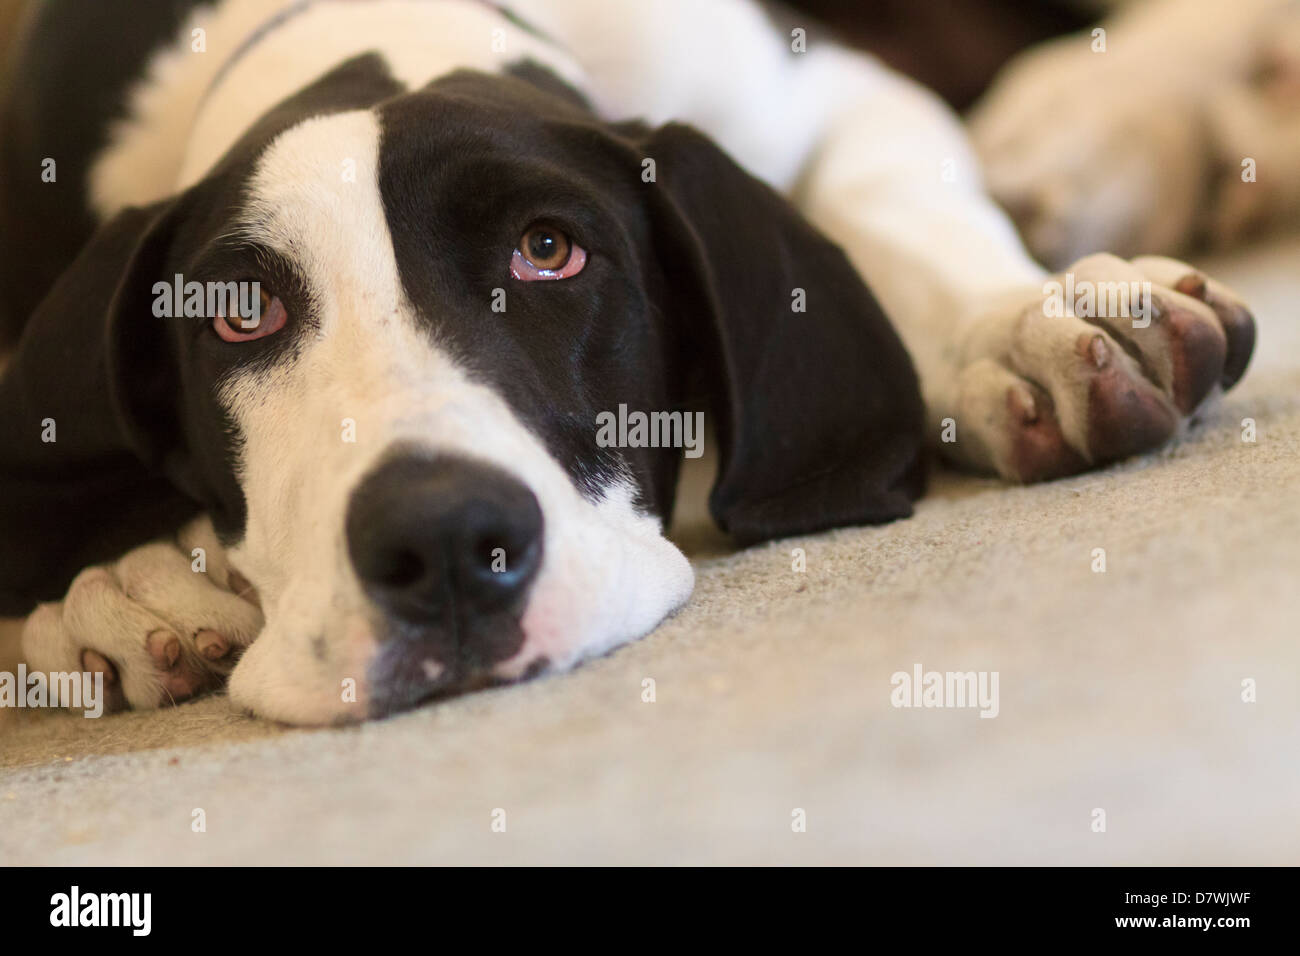 Great Dane Staring 2 - Stock Image